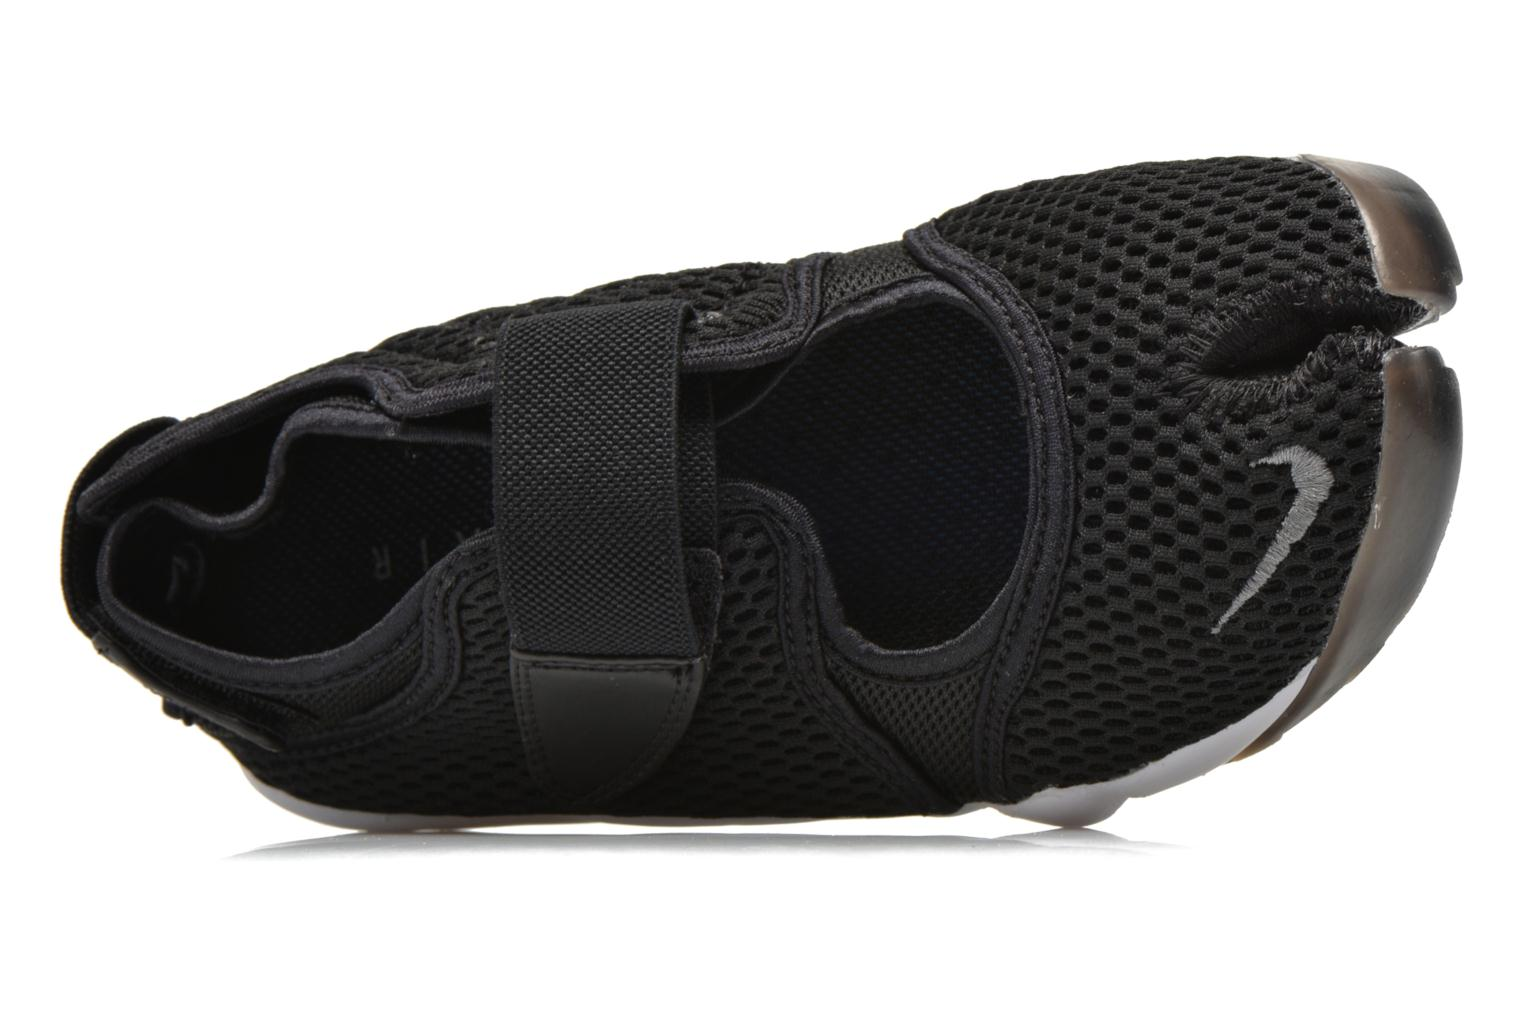 Wmns Nike Air Rift Br Black/Cool Grey-White